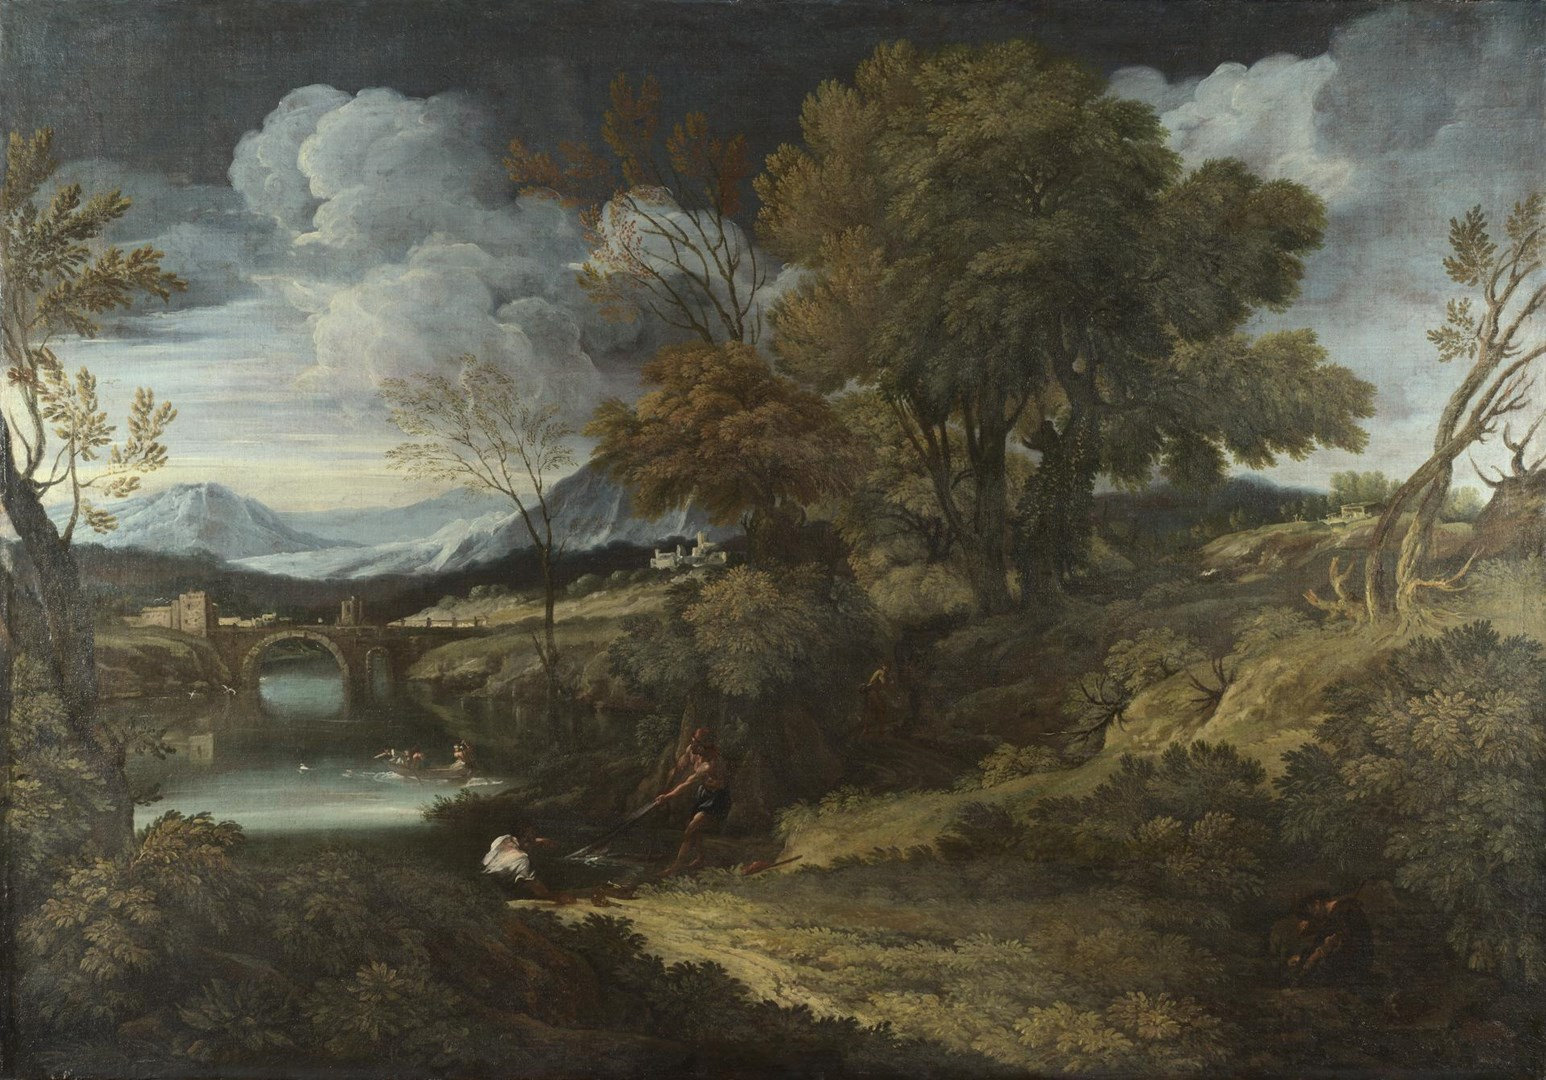 Landscape with Fishermen by Crescenzio Onofri